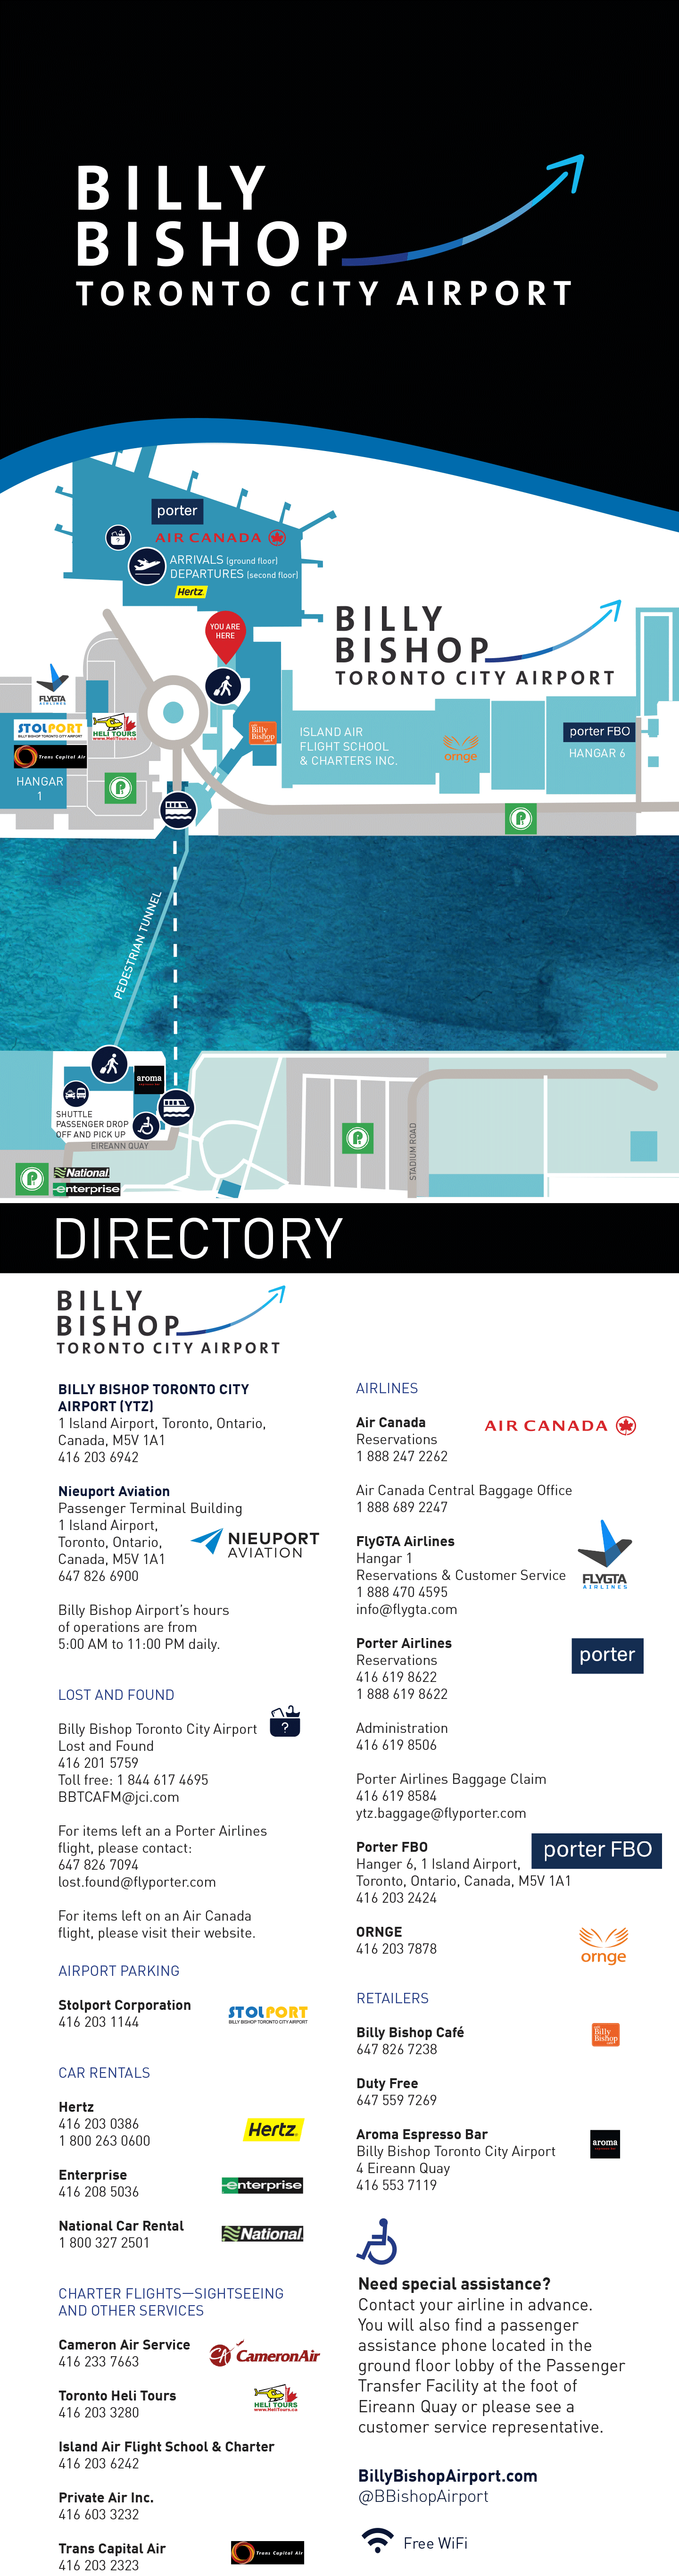 Store directory and map